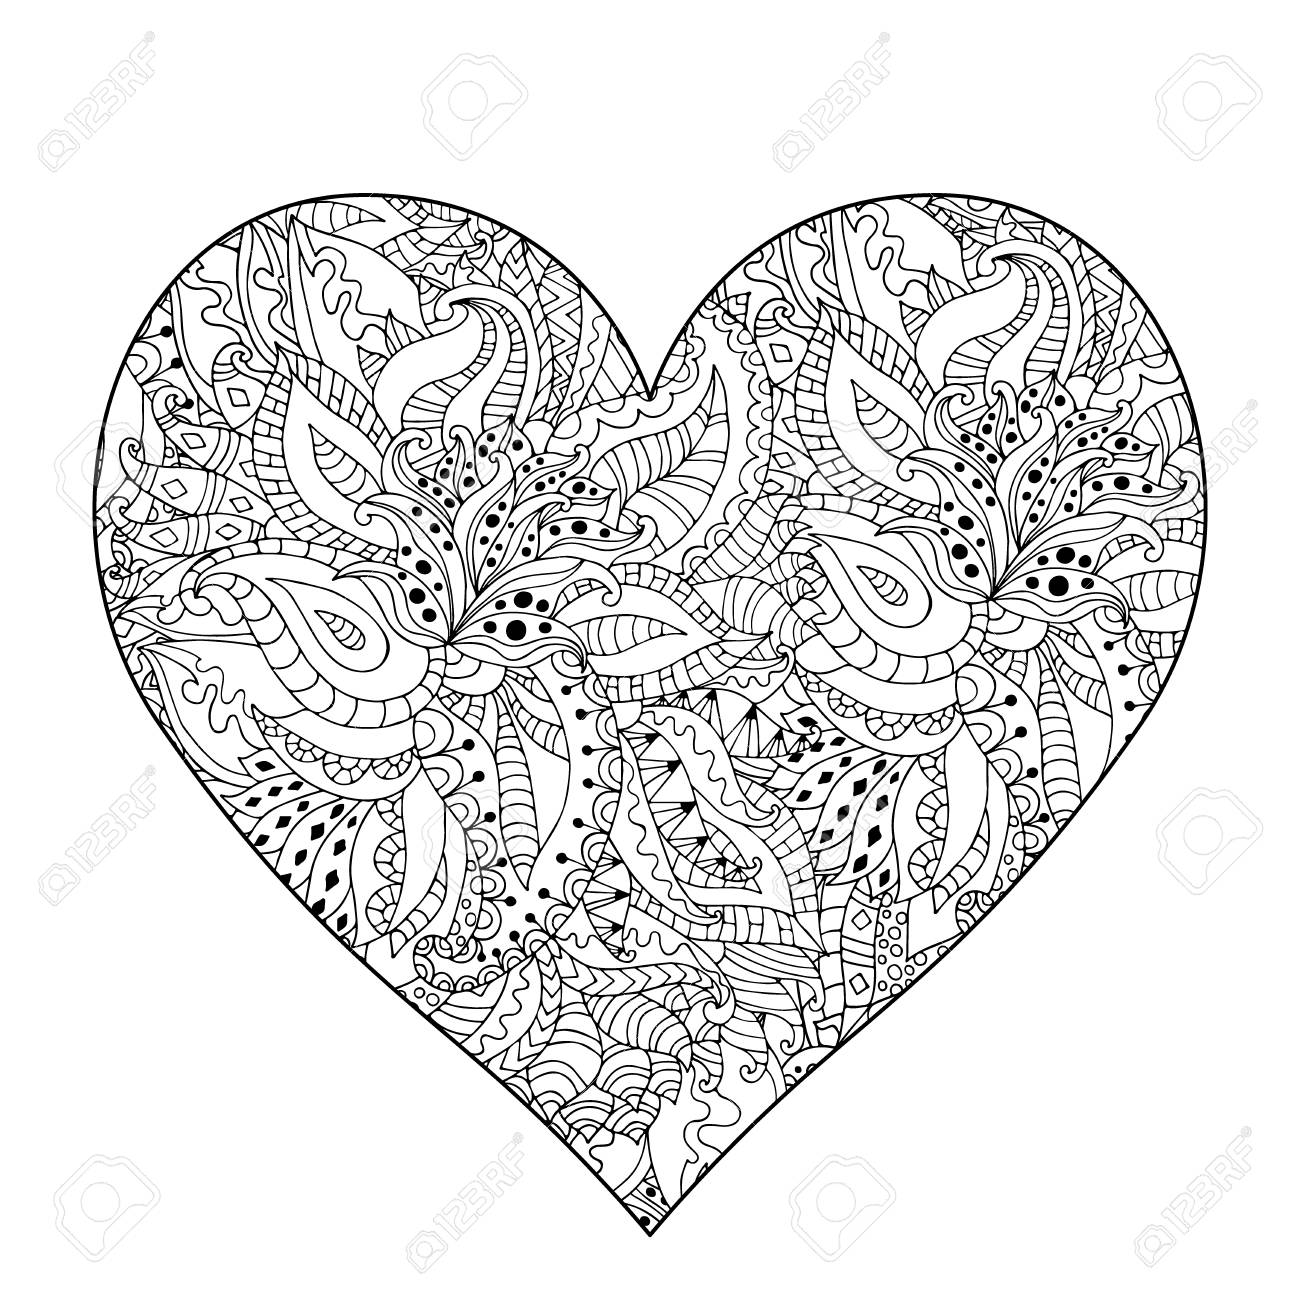 - Hand Drawn Flower Heart For Adult Anti Stress. Coloring Page